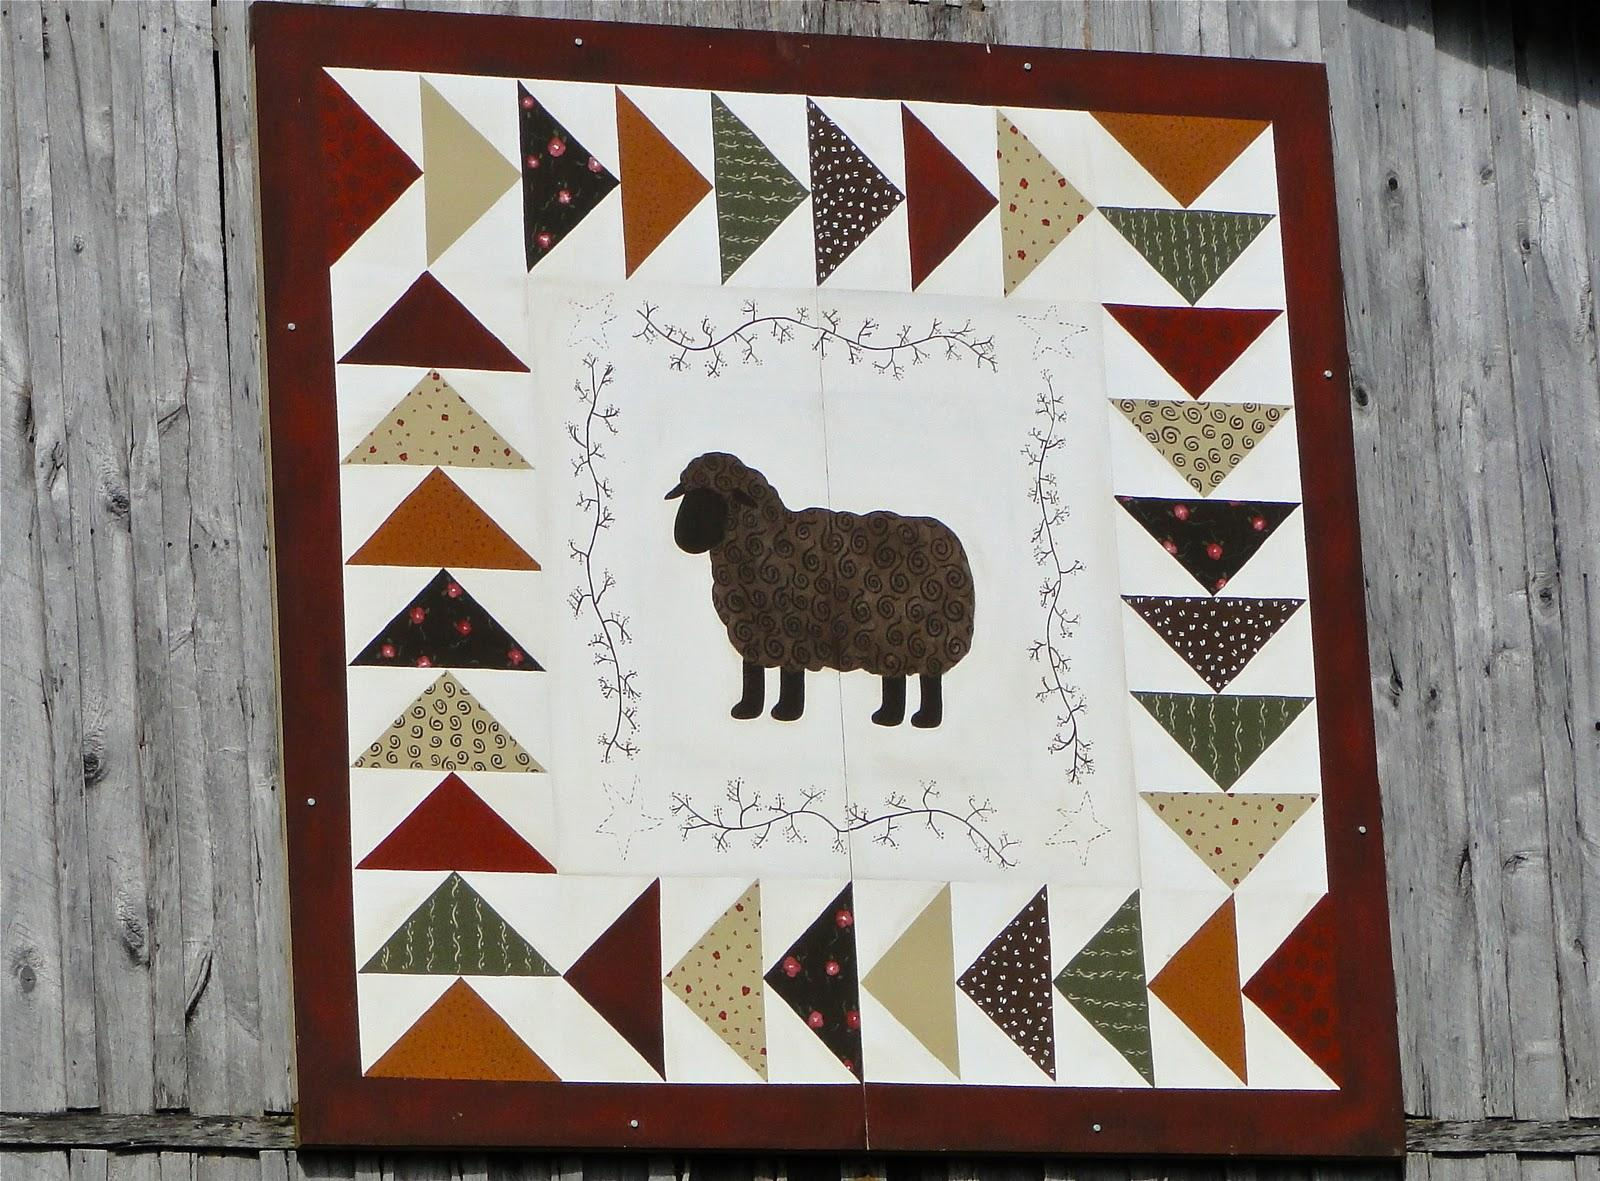 The finished barn quilt was